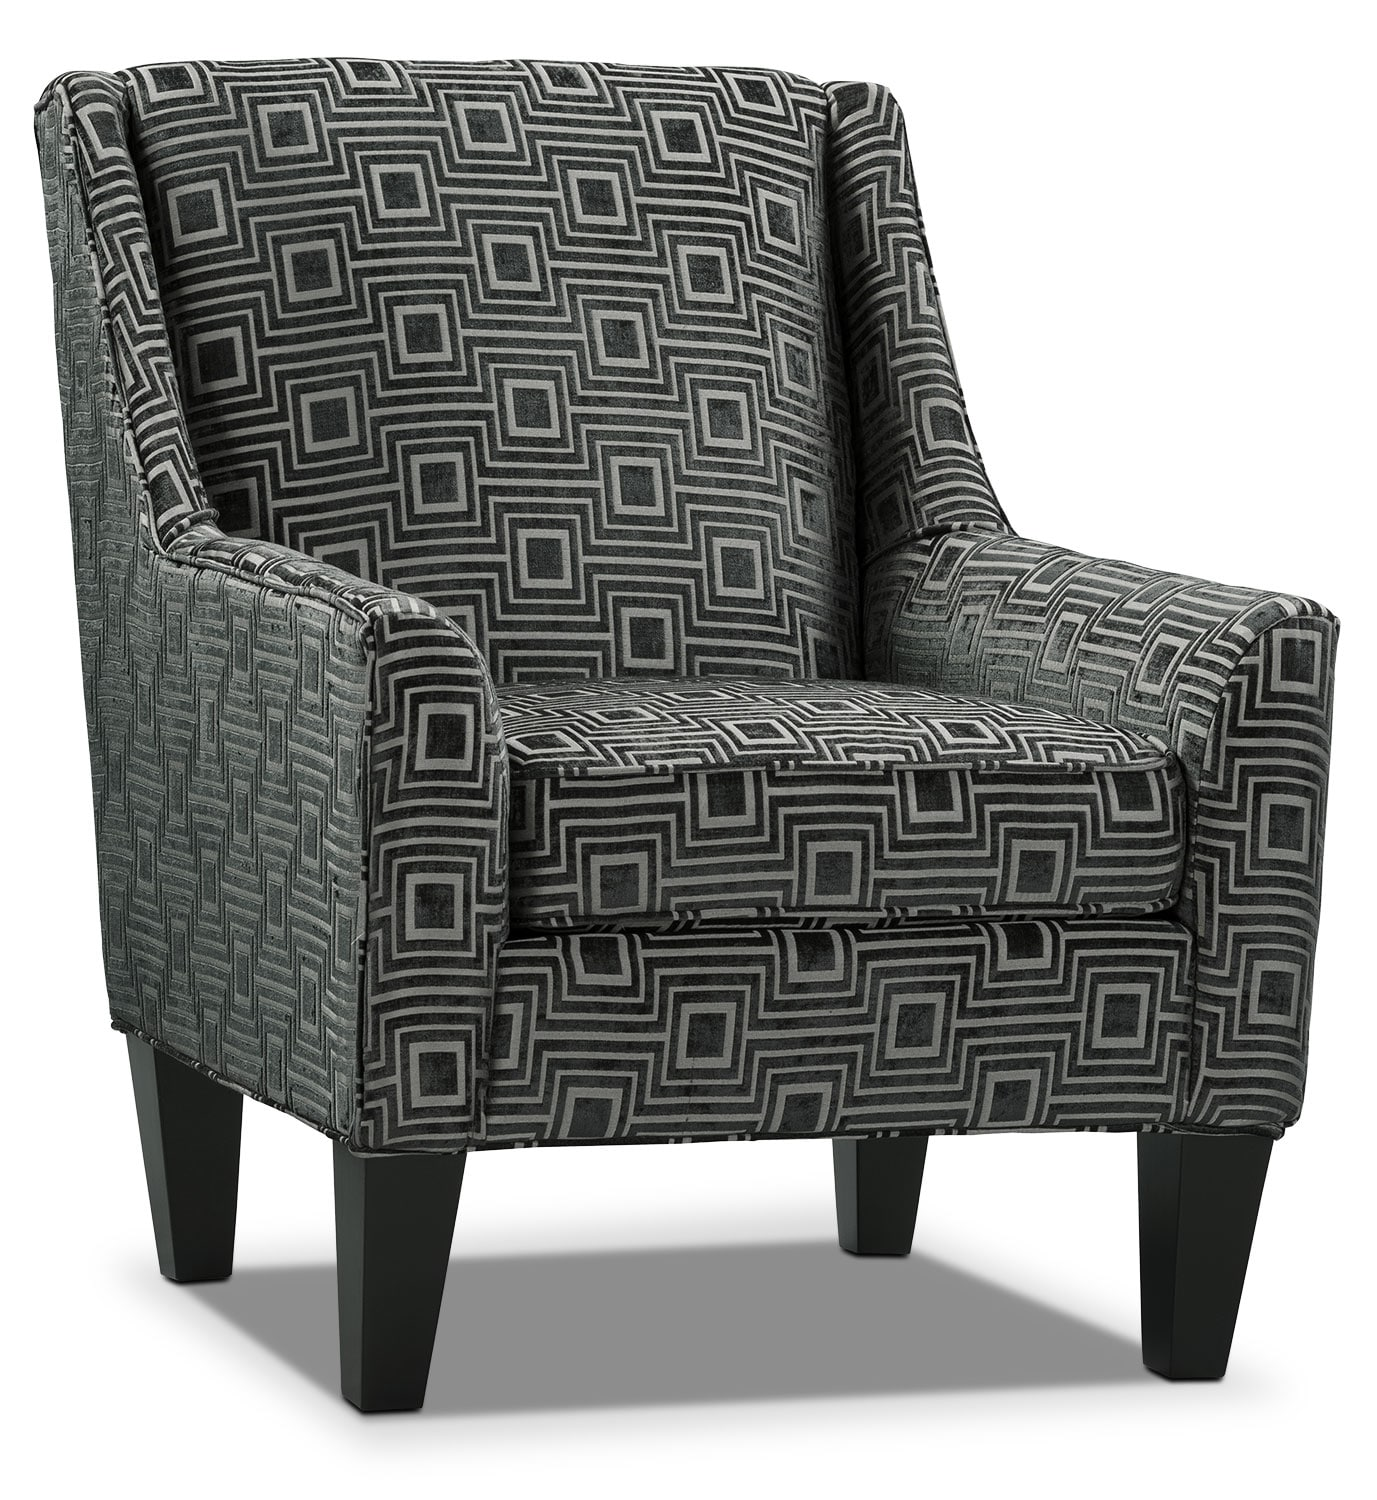 Urbana Voided Chenille Accent Chair - Black/Light Grey